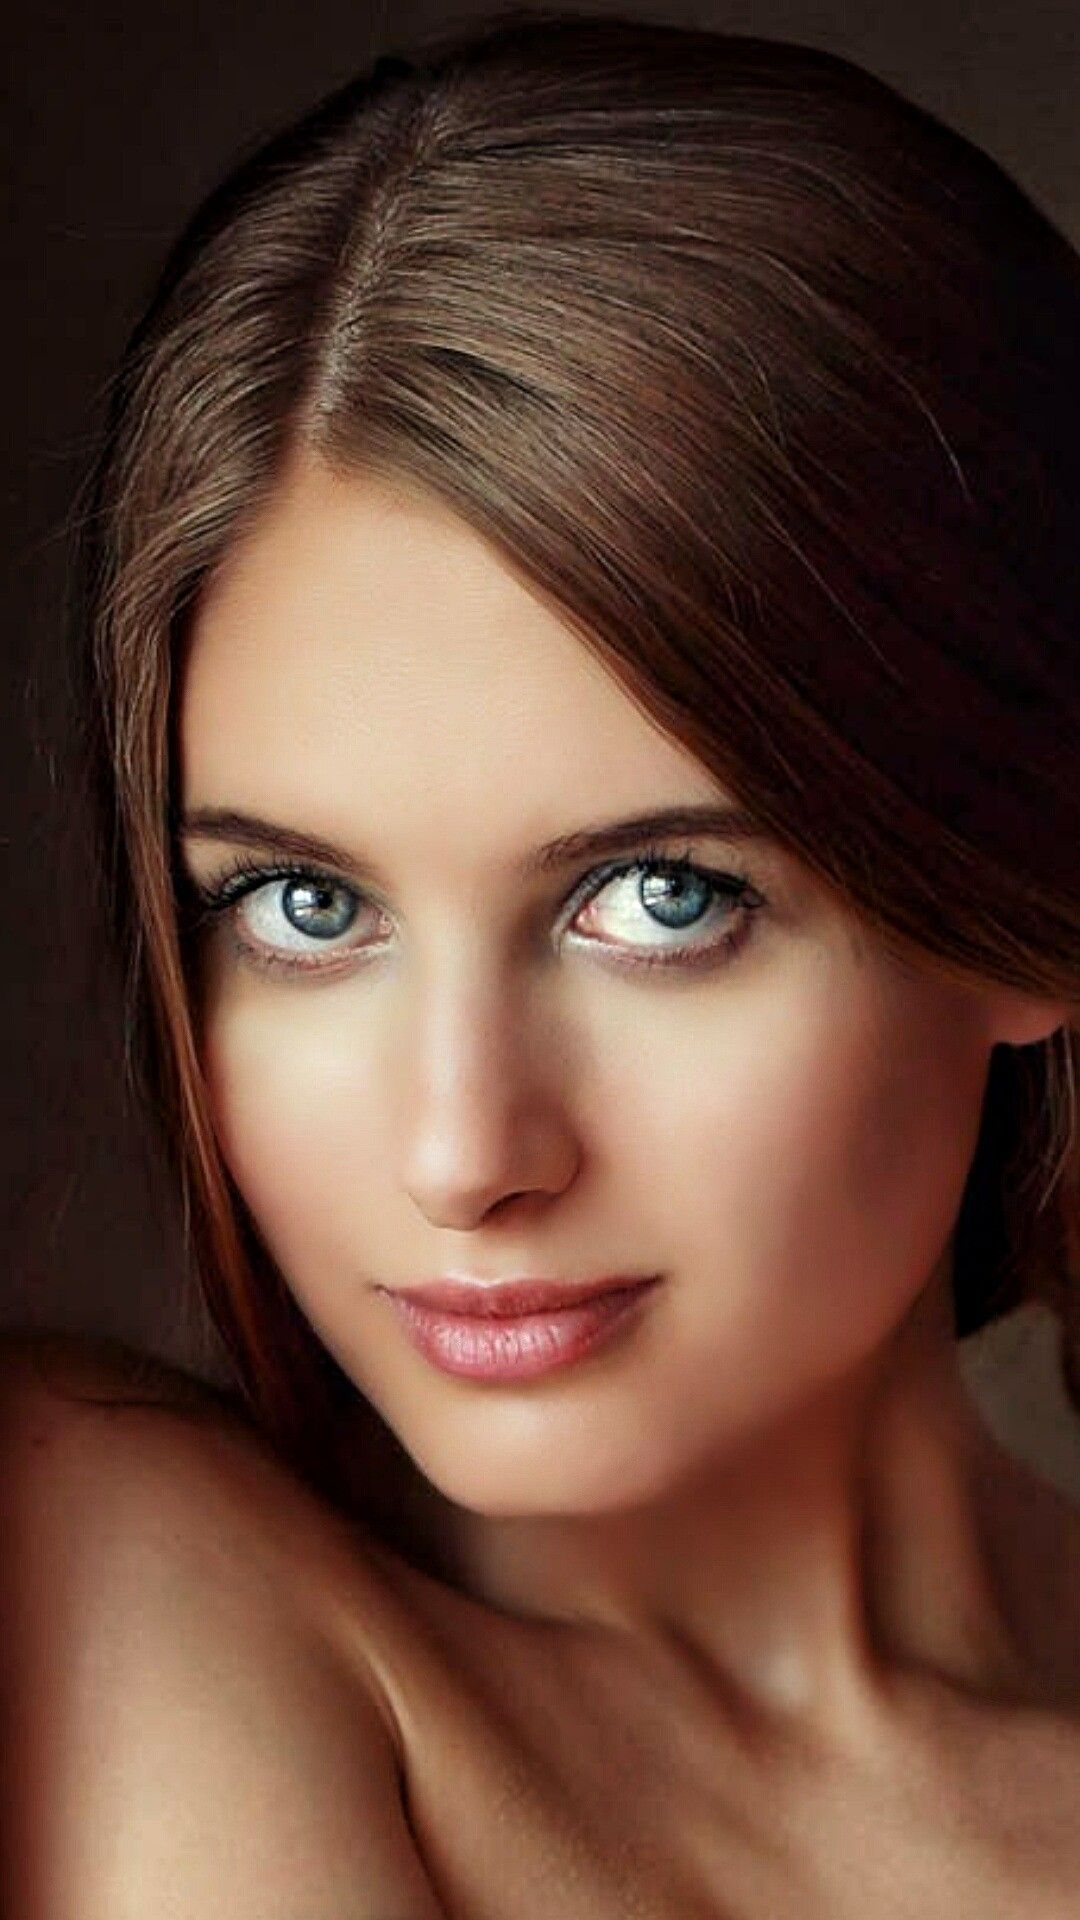 very cute | face | pinterest | face, woman and portraits